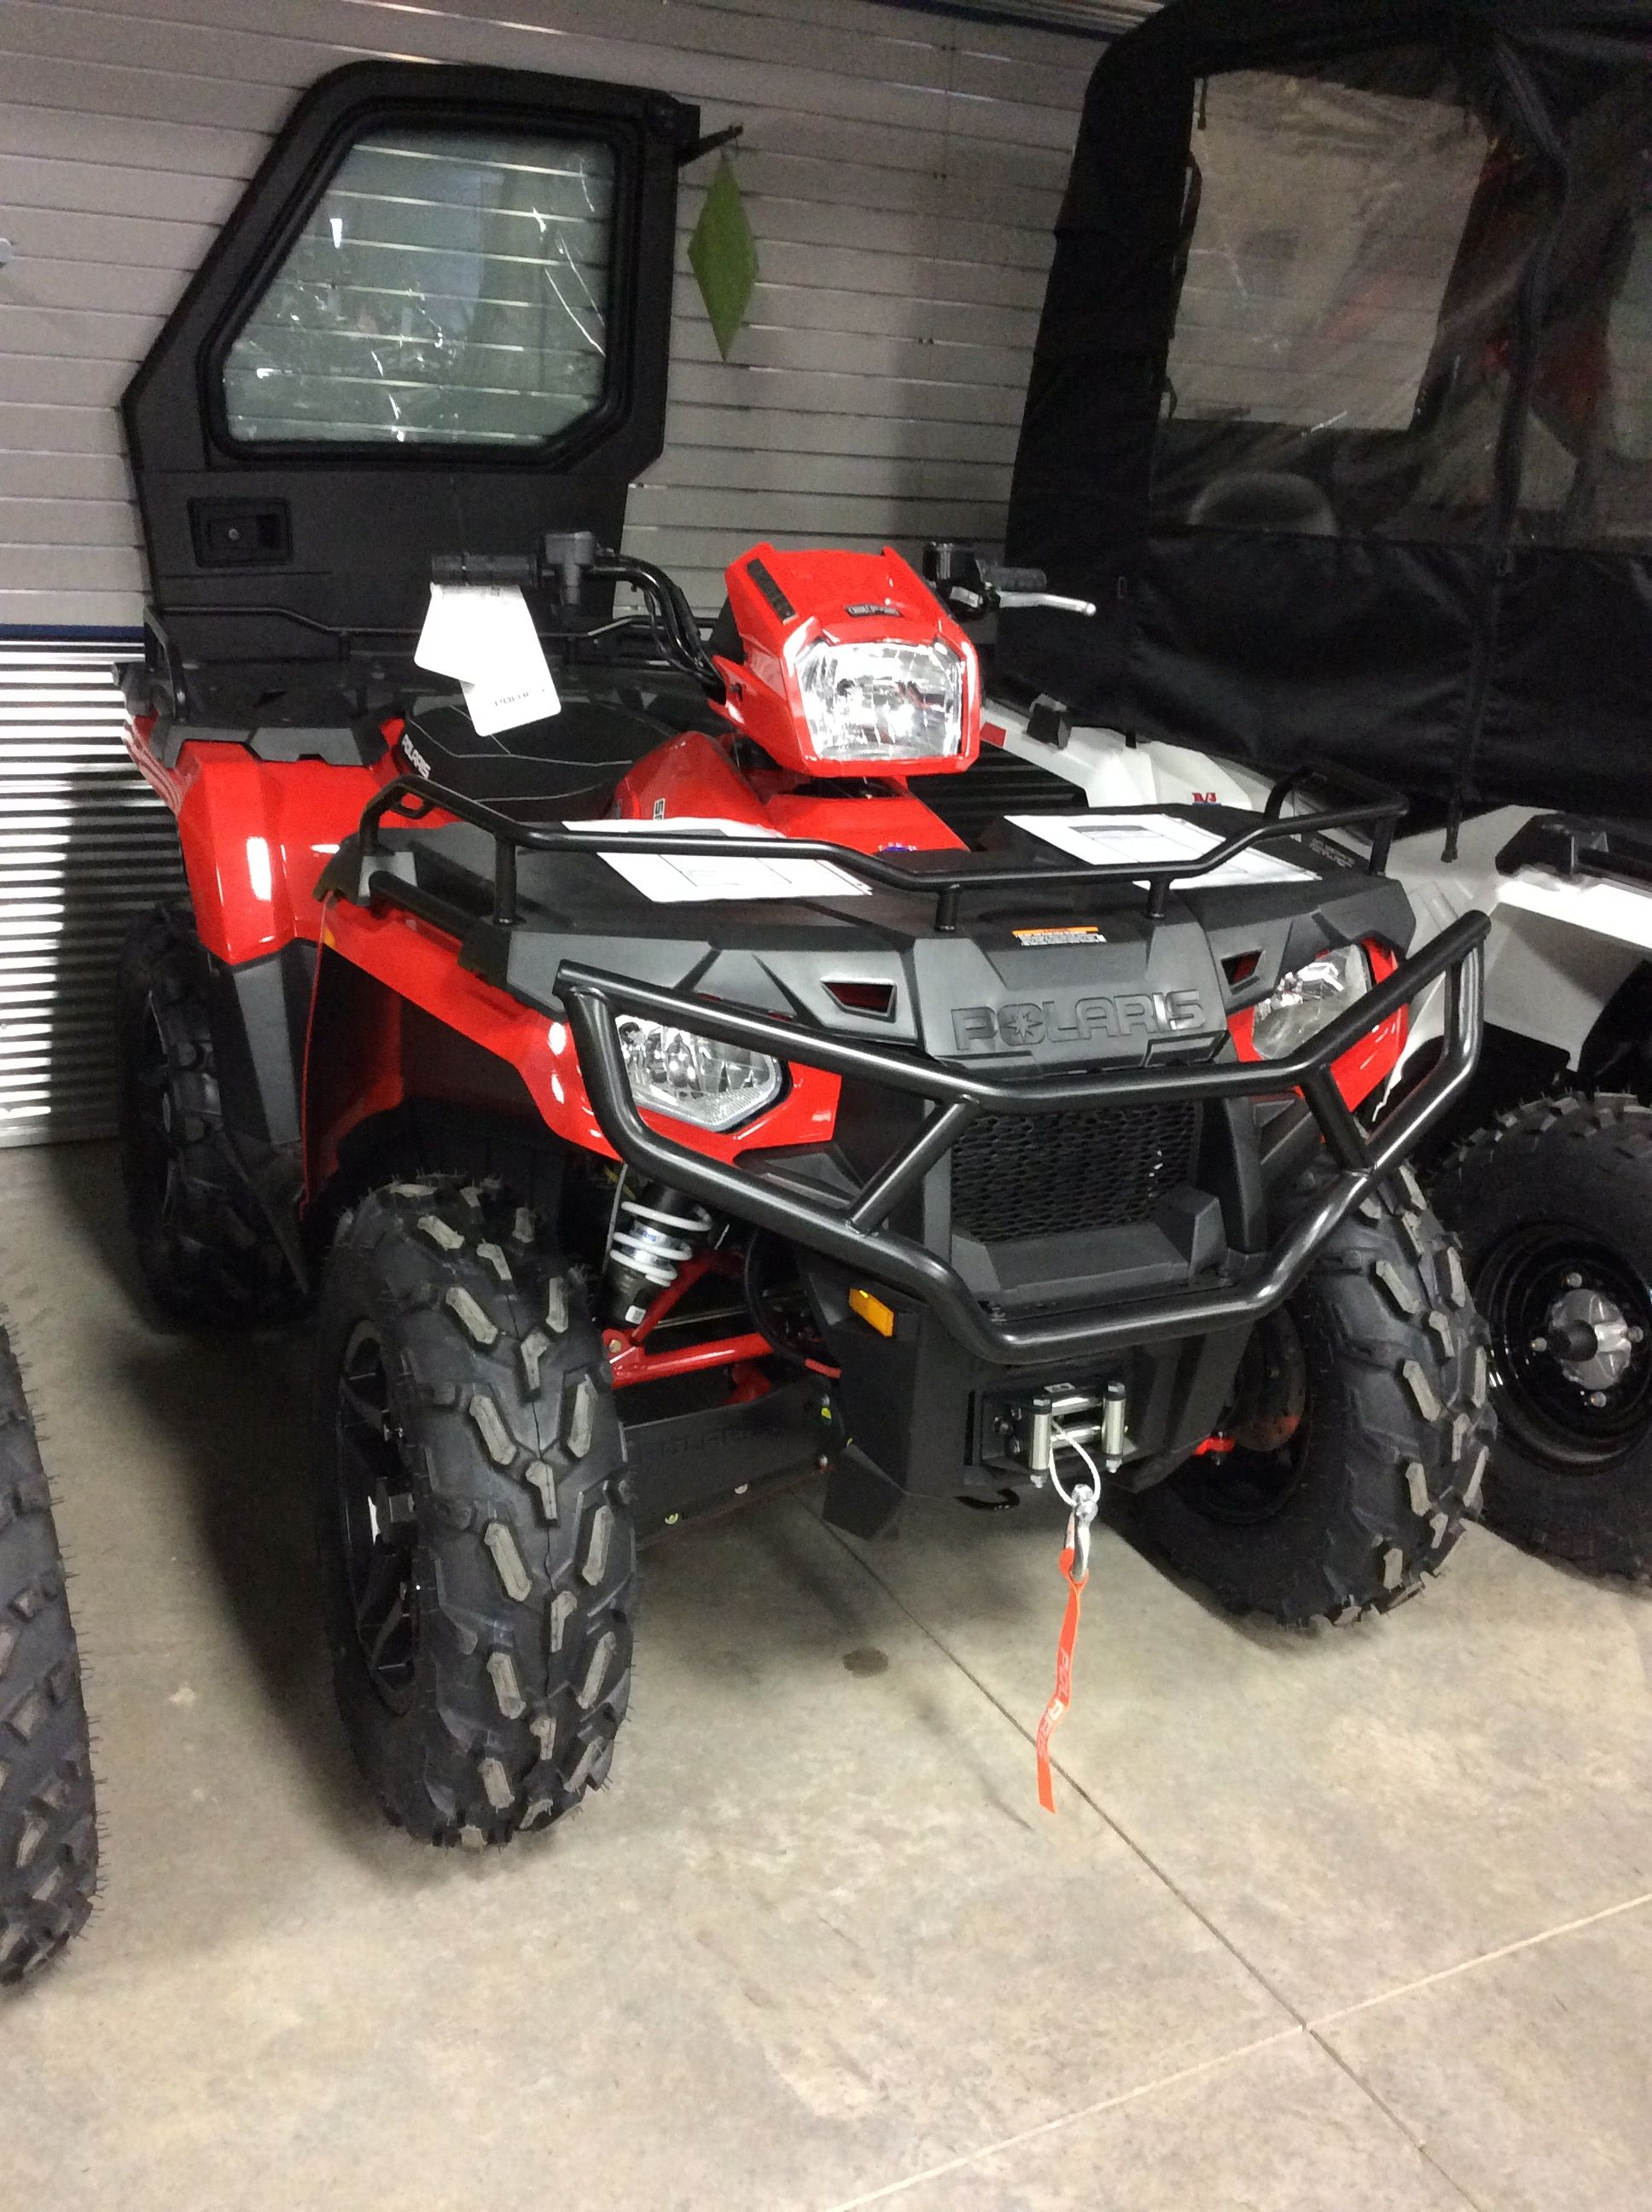 2016 polaris sportsman 570 sp with winch polaris pinterest atv 2016 polaris sportsman 570 sp with winch publicscrutiny Gallery